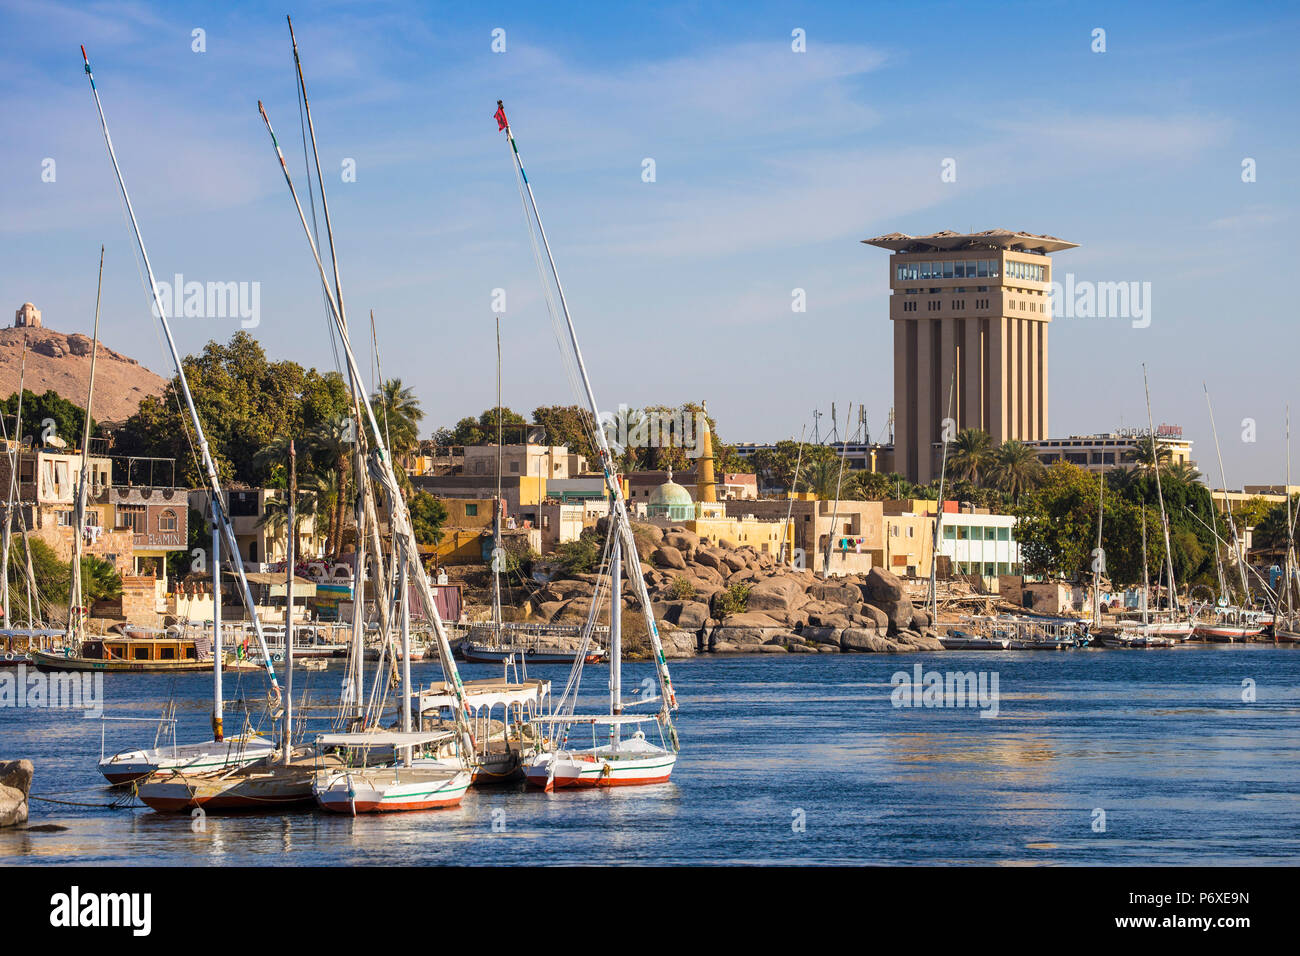 Egypt, Upper Egypt, Aswan, View of Movenpick Resort and River Nile - Stock Image